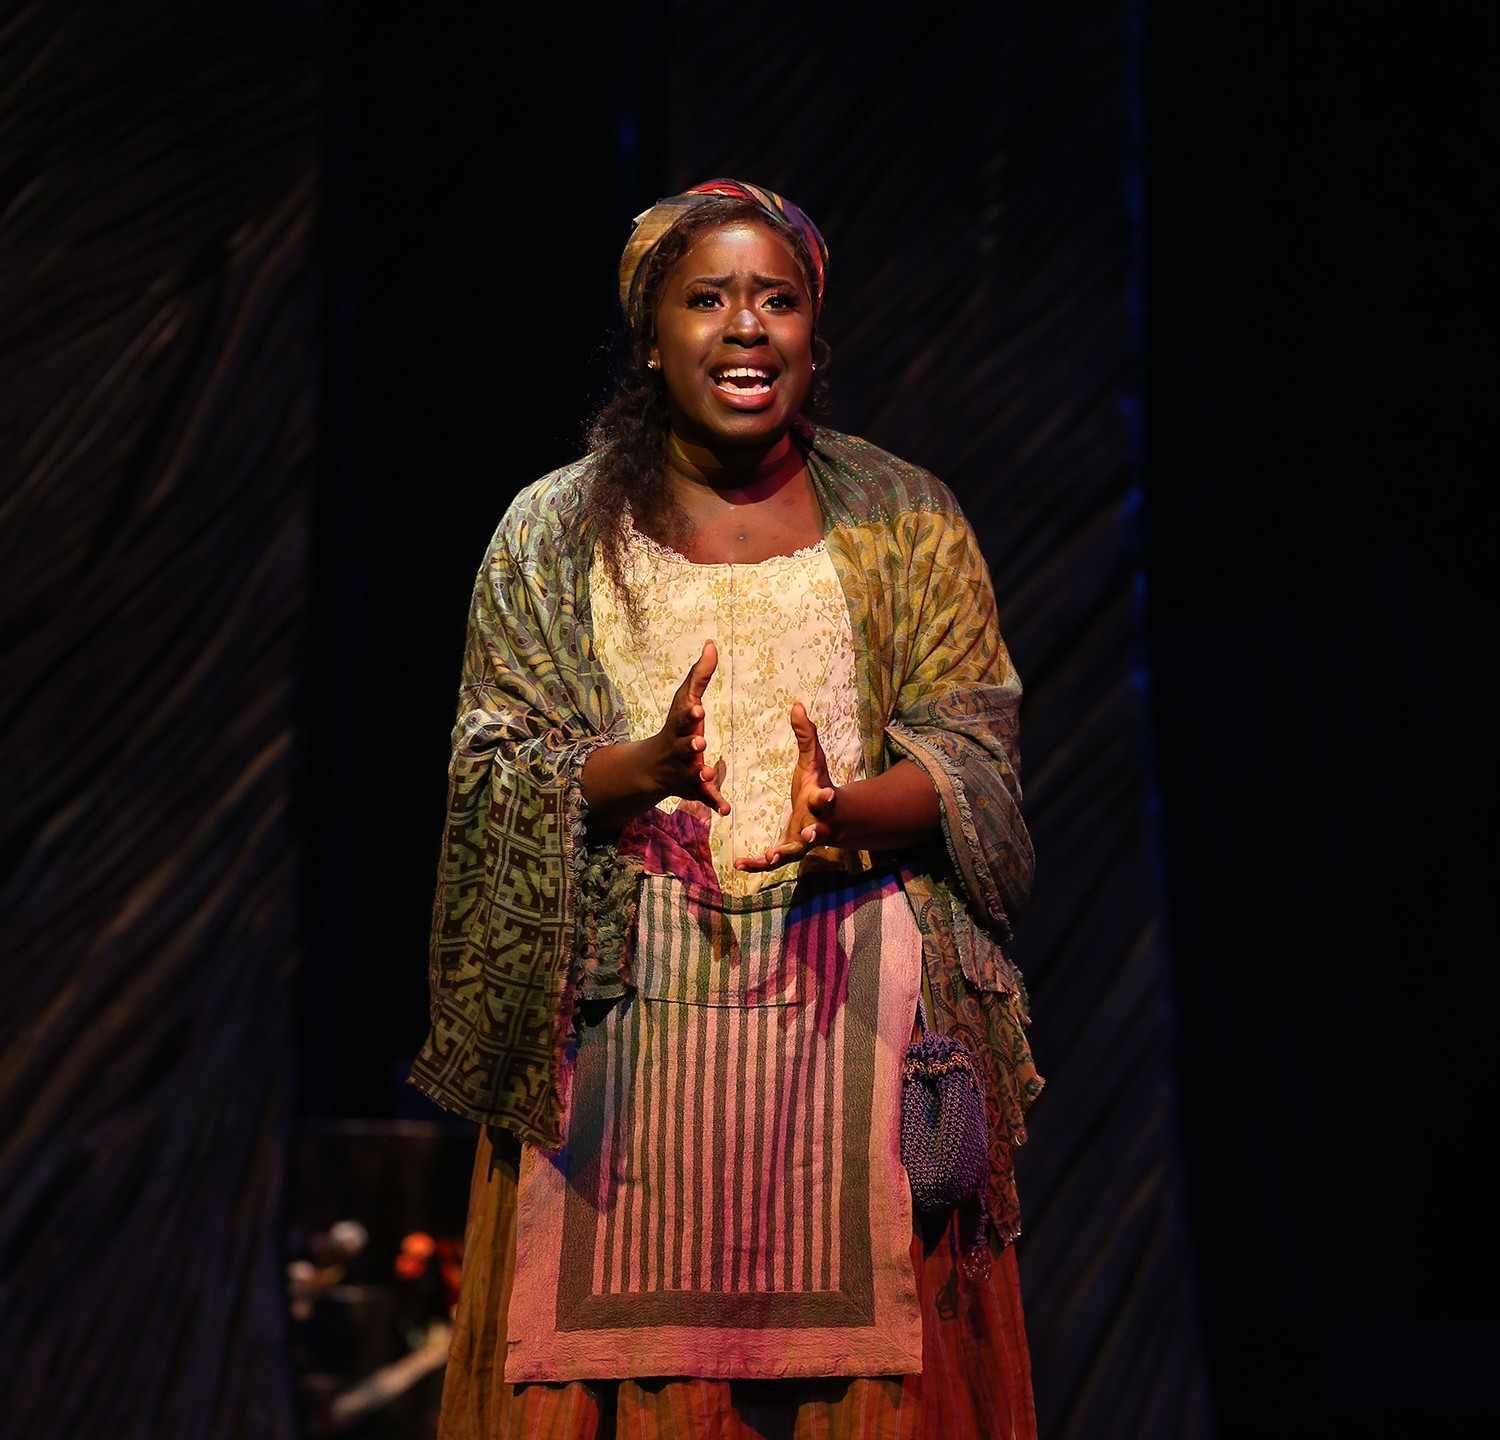 Baker's Wife stands and sings. She wears a corseted top, a brightly patterned scarf of reds, blues and yellows on her head, and an ankle-length yellow skirt